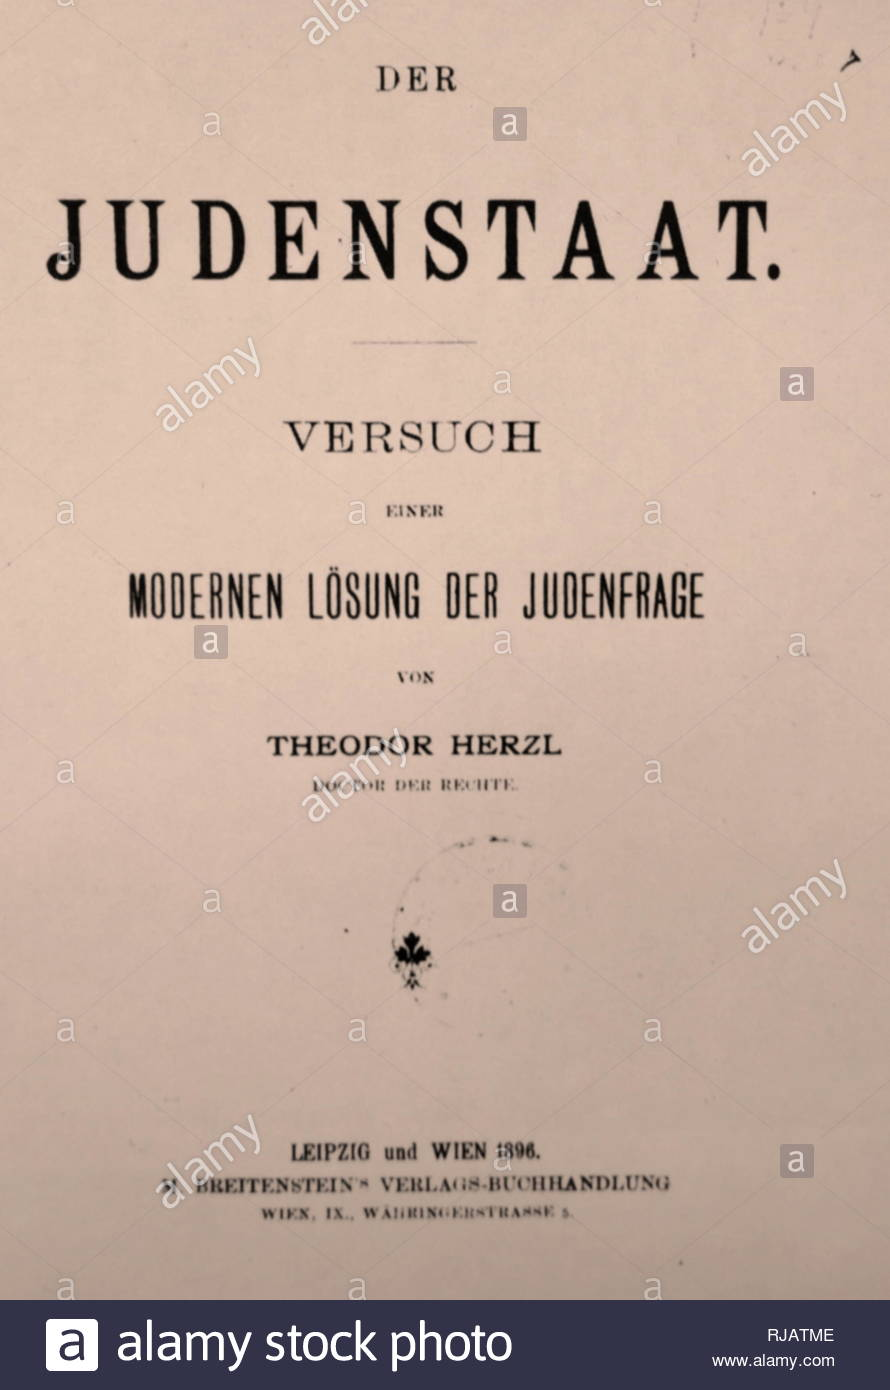 1896 Edition, of Der Judenstaat, by Theodor Herzl, the Austro-Hungarian journalist,  who was the father of modern political Zionism. Herzl formed the Zionist Organization and promoted Jewish immigration to Palestine in an effort to form a Jewish state. Der Judenstaat (The Jewish State), is a pamphlet written by Herzl and is considered one of the most important texts of early Zionism. Herzl envisioned the founding of a future independent Jewish state during the 20th century. He argued that the best way to avoid anti-Semitism in Europe was to create this independent Jewish state. The book encour - Stock Image